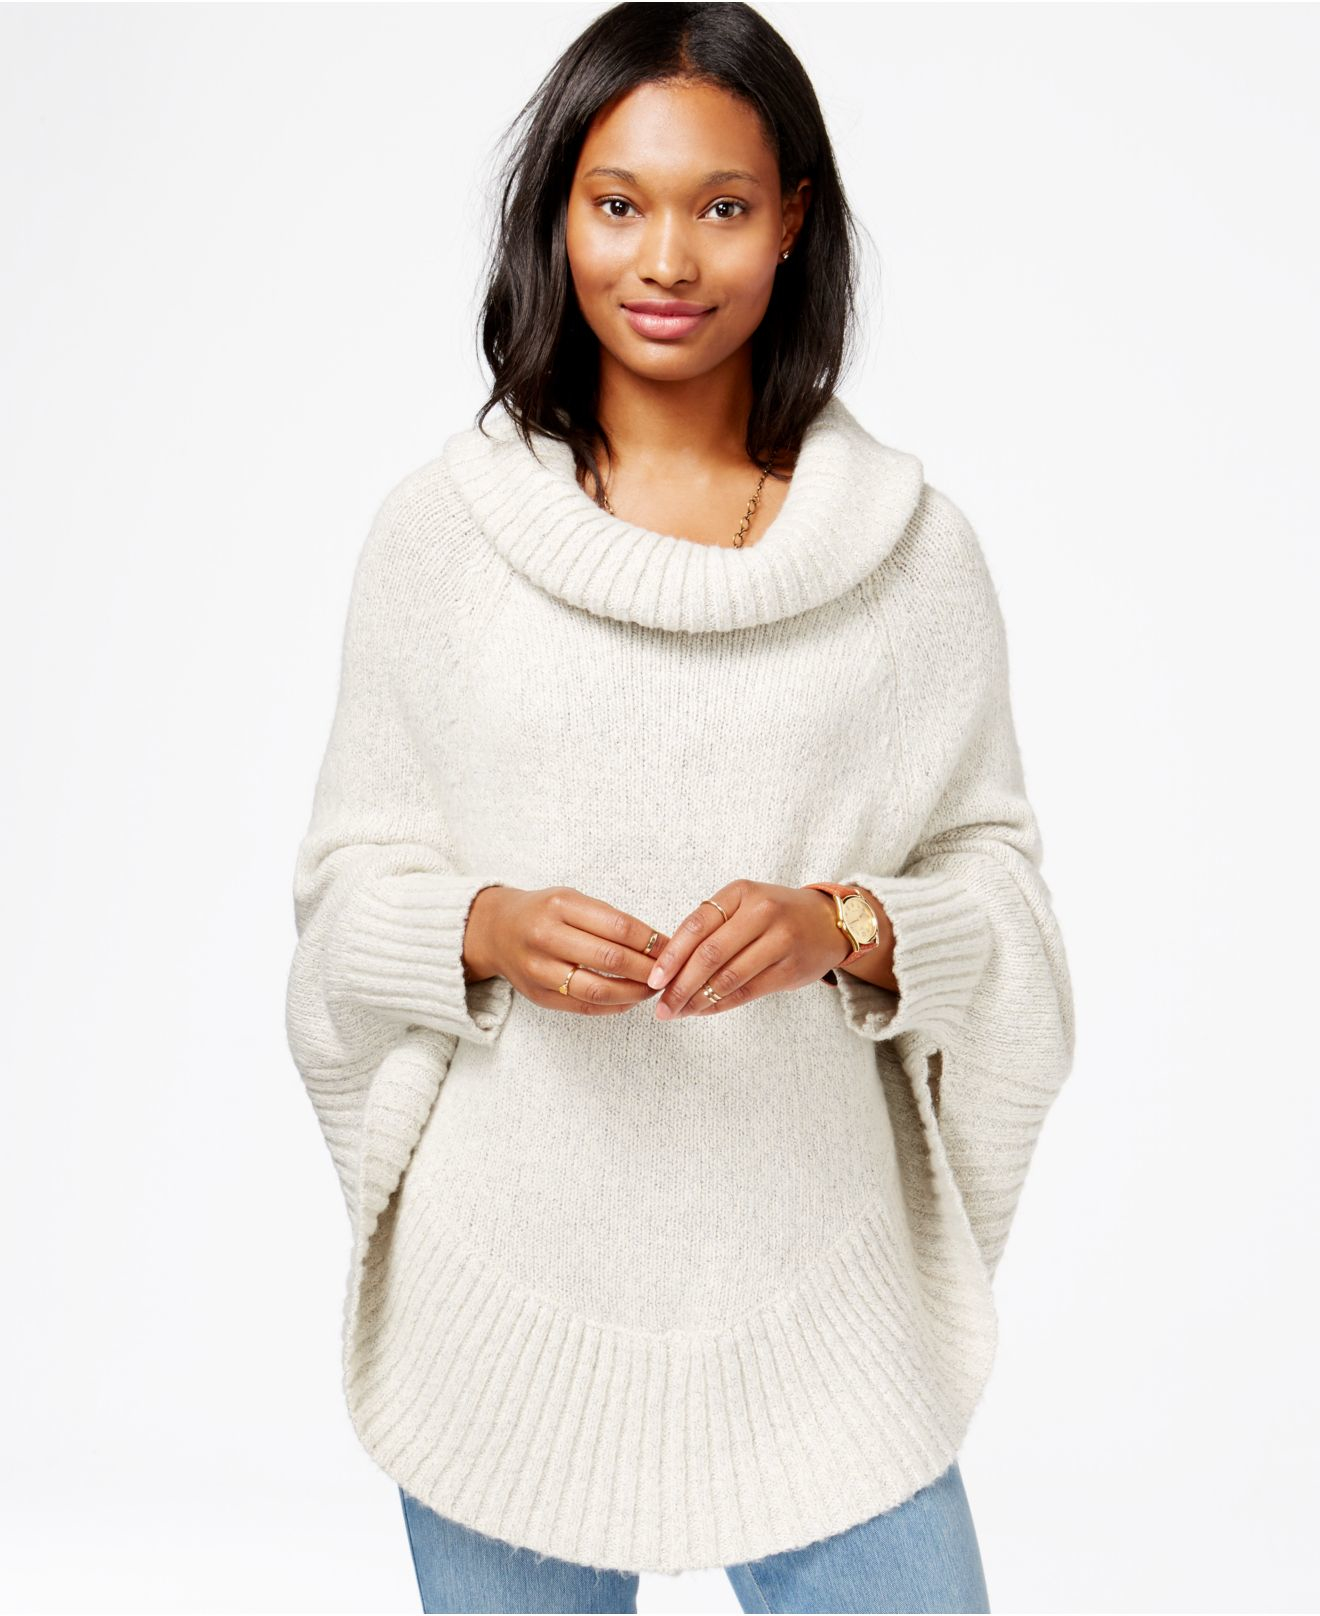 Cowl Neck Poncho Knitting Pattern : Maison jules Long-sleeve Cowl-neck Marled-knit Poncho in White Lyst